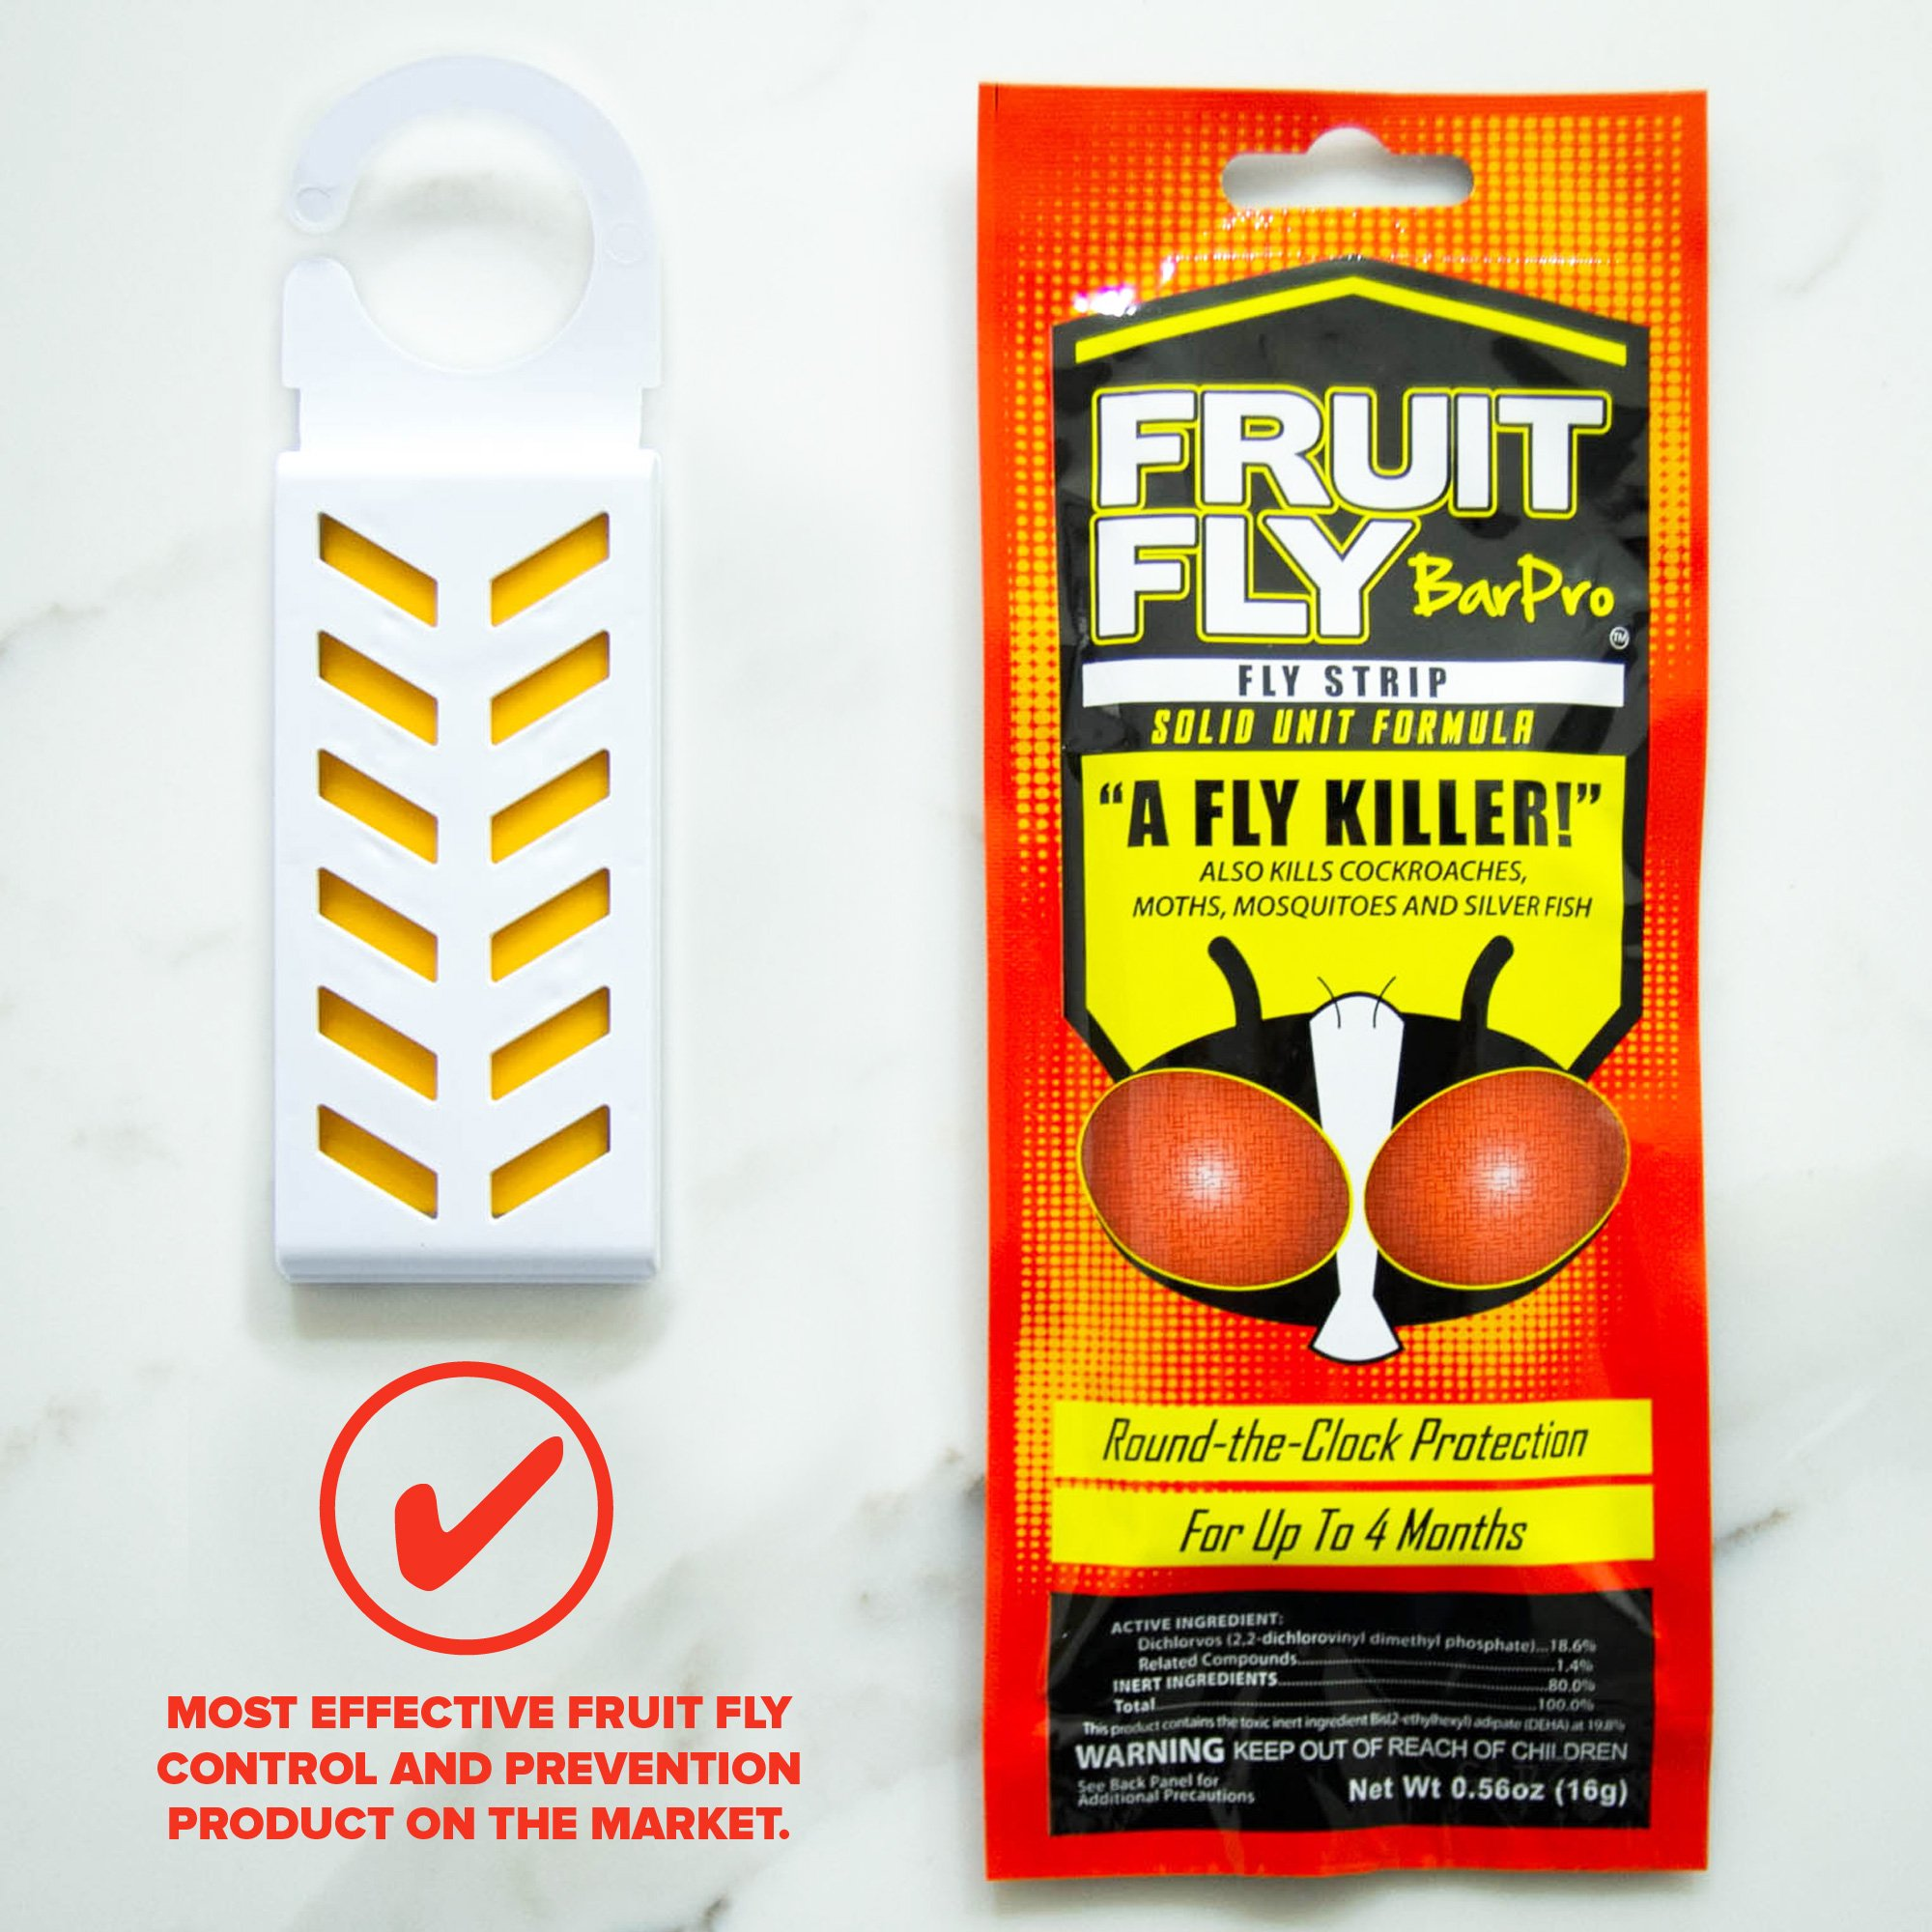 Fruit Fly BarPro Fly Strip – 4 Month Protection Against Flies, Cockroaches, Mosquitos & Other Pests – Portable for Indoor & Outdoor Use (5 Strips, Food Service Pack) by Fruit Fly BarPro (Image #3)